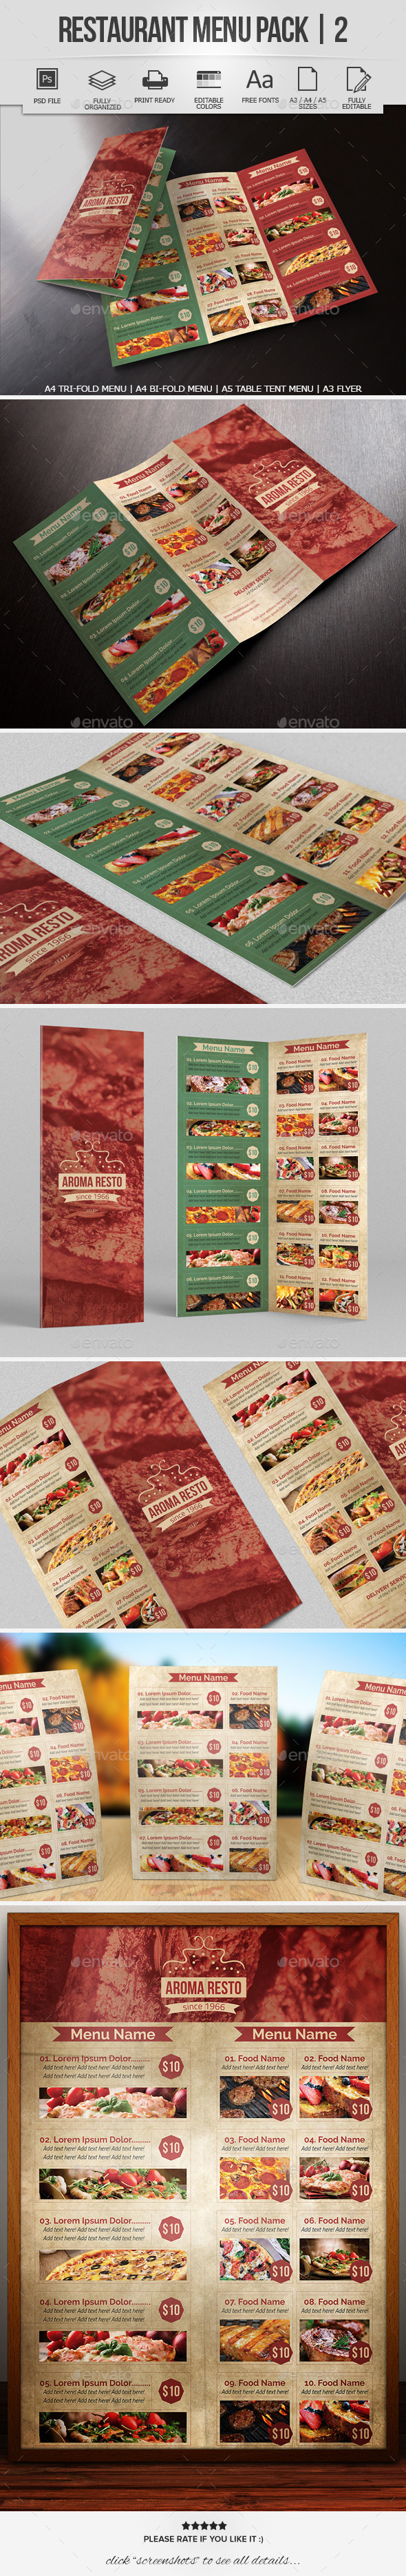 GraphicRiver Restaurant Menu Pack 2 8843868